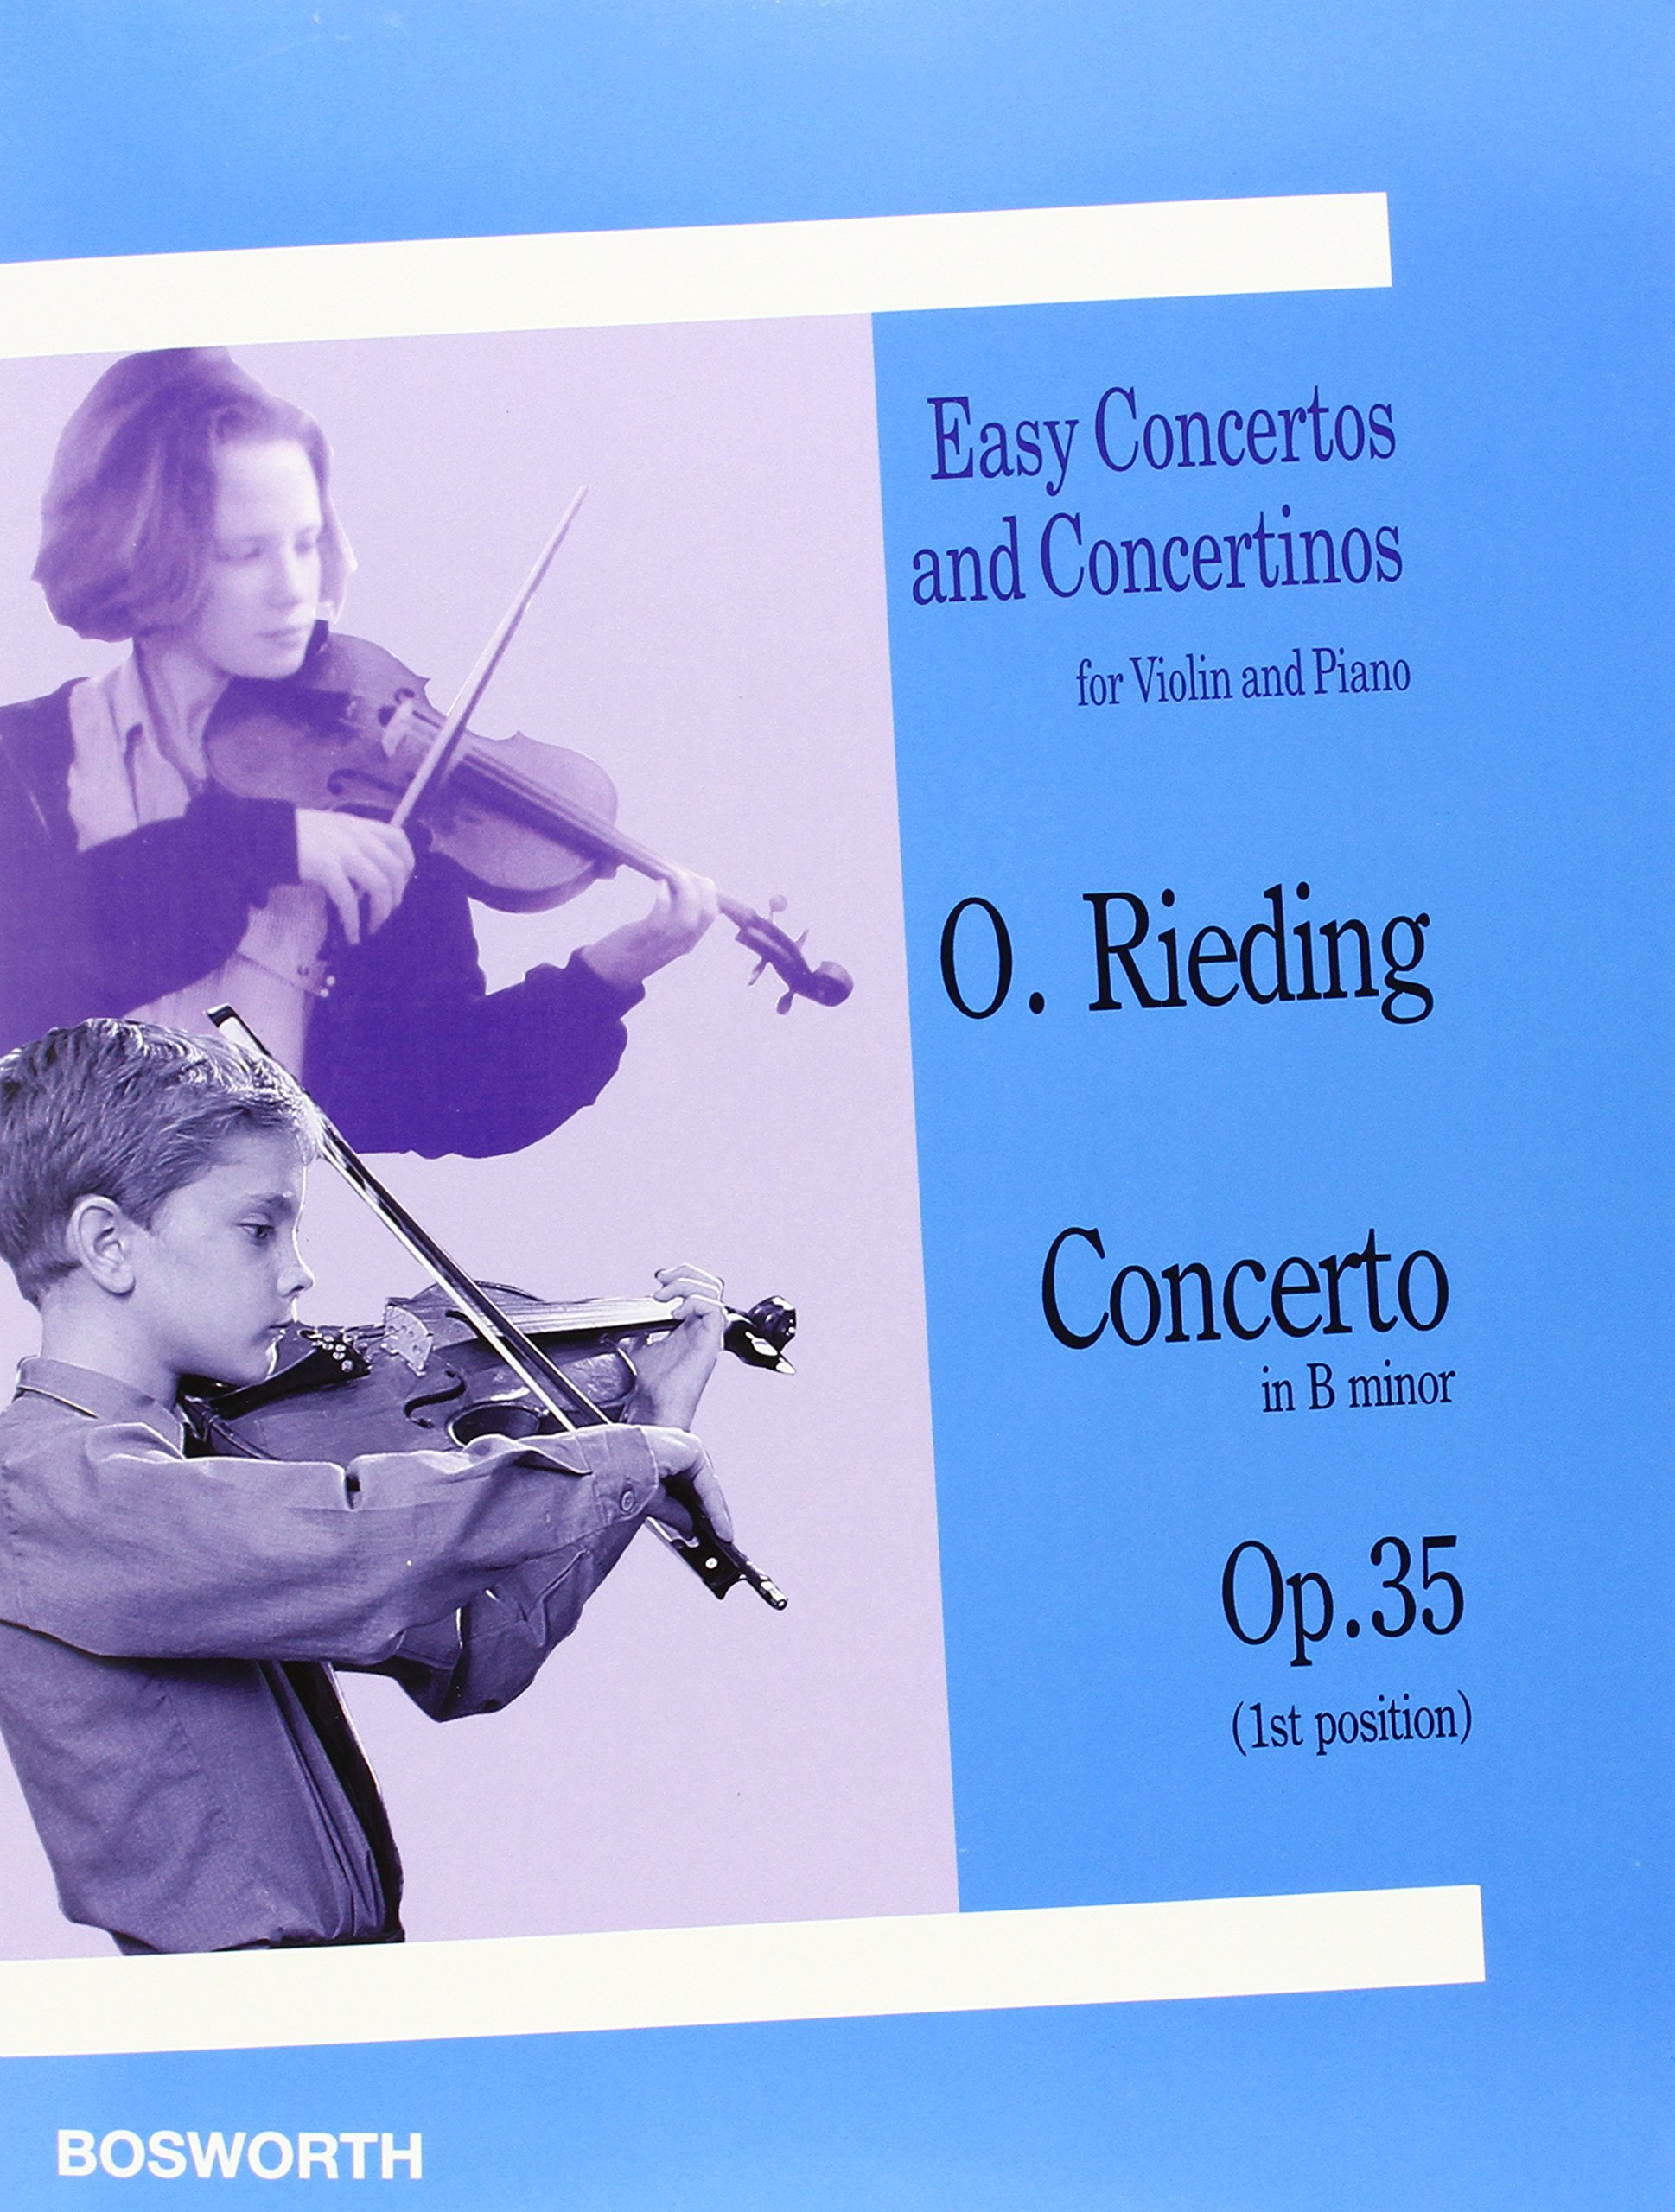 Concerto in B Minor, Op. 35: Easy Concertos and Concertinos Series for Violin and Piano (Easy Concertos and Concertinos for Violin and Piano)